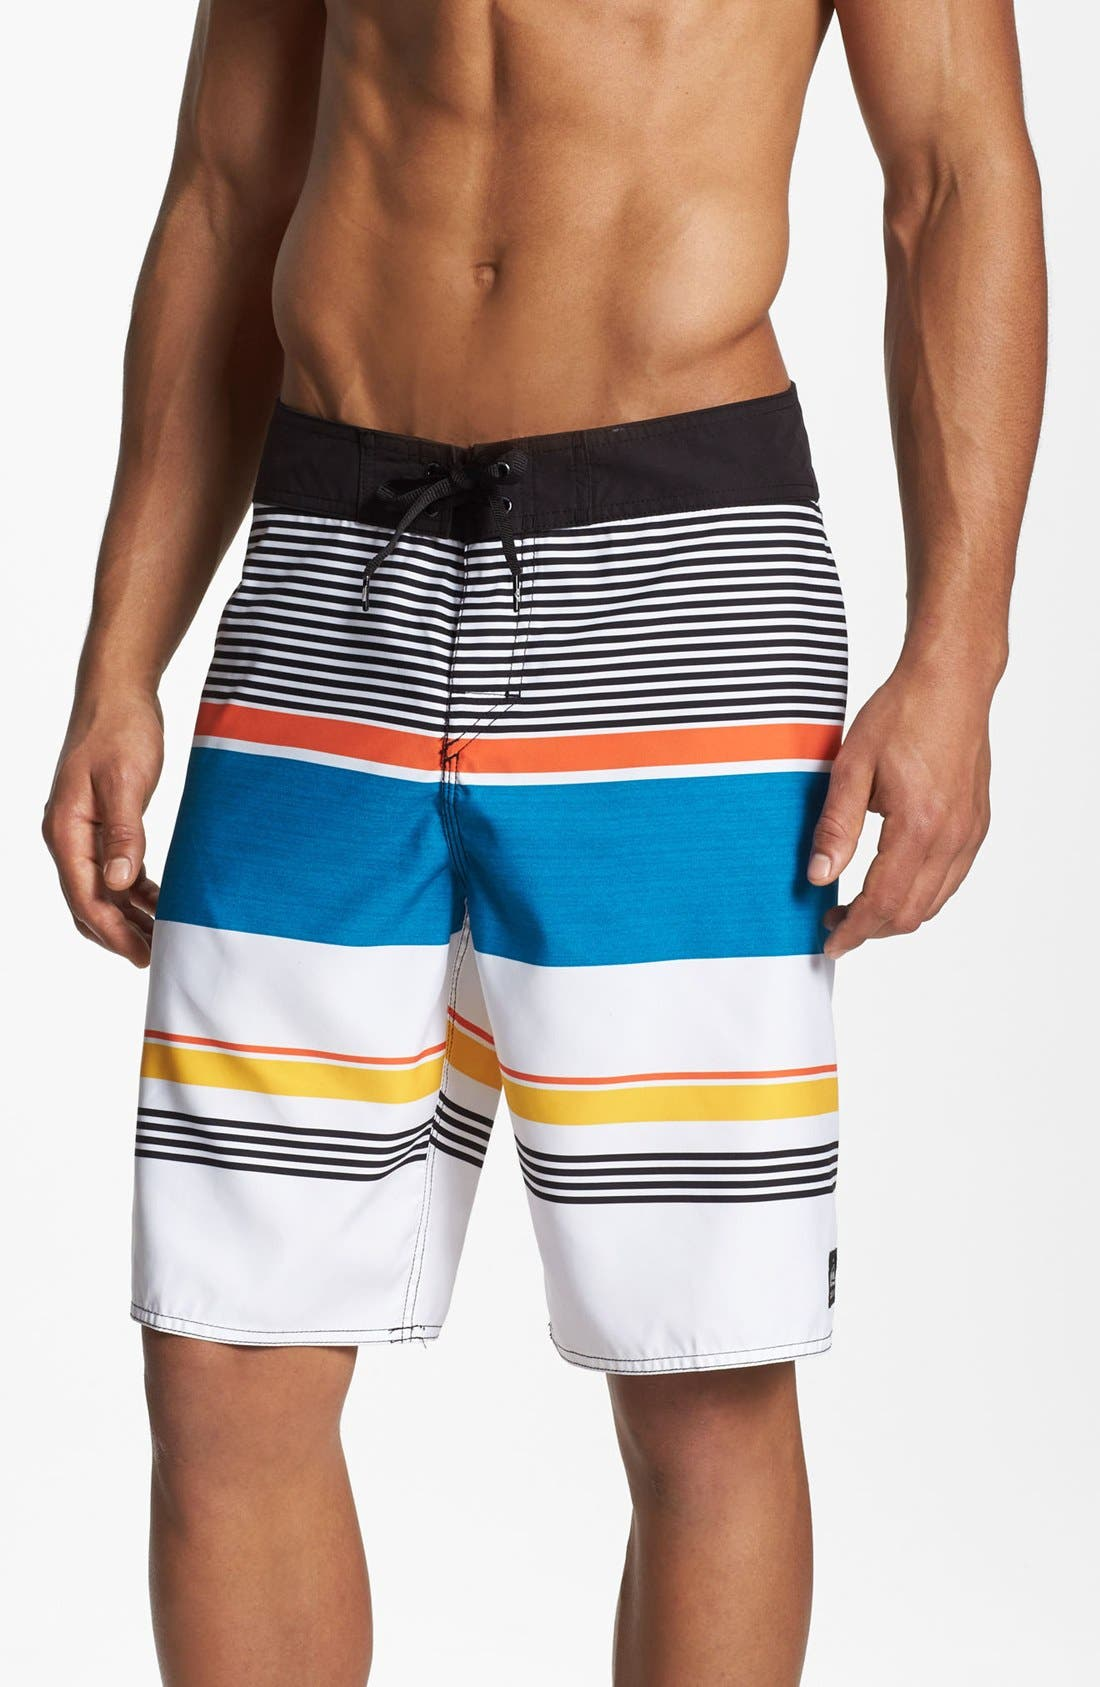 Alternate Image 1 Selected - Quiksilver 'Stuffed' Board Shorts